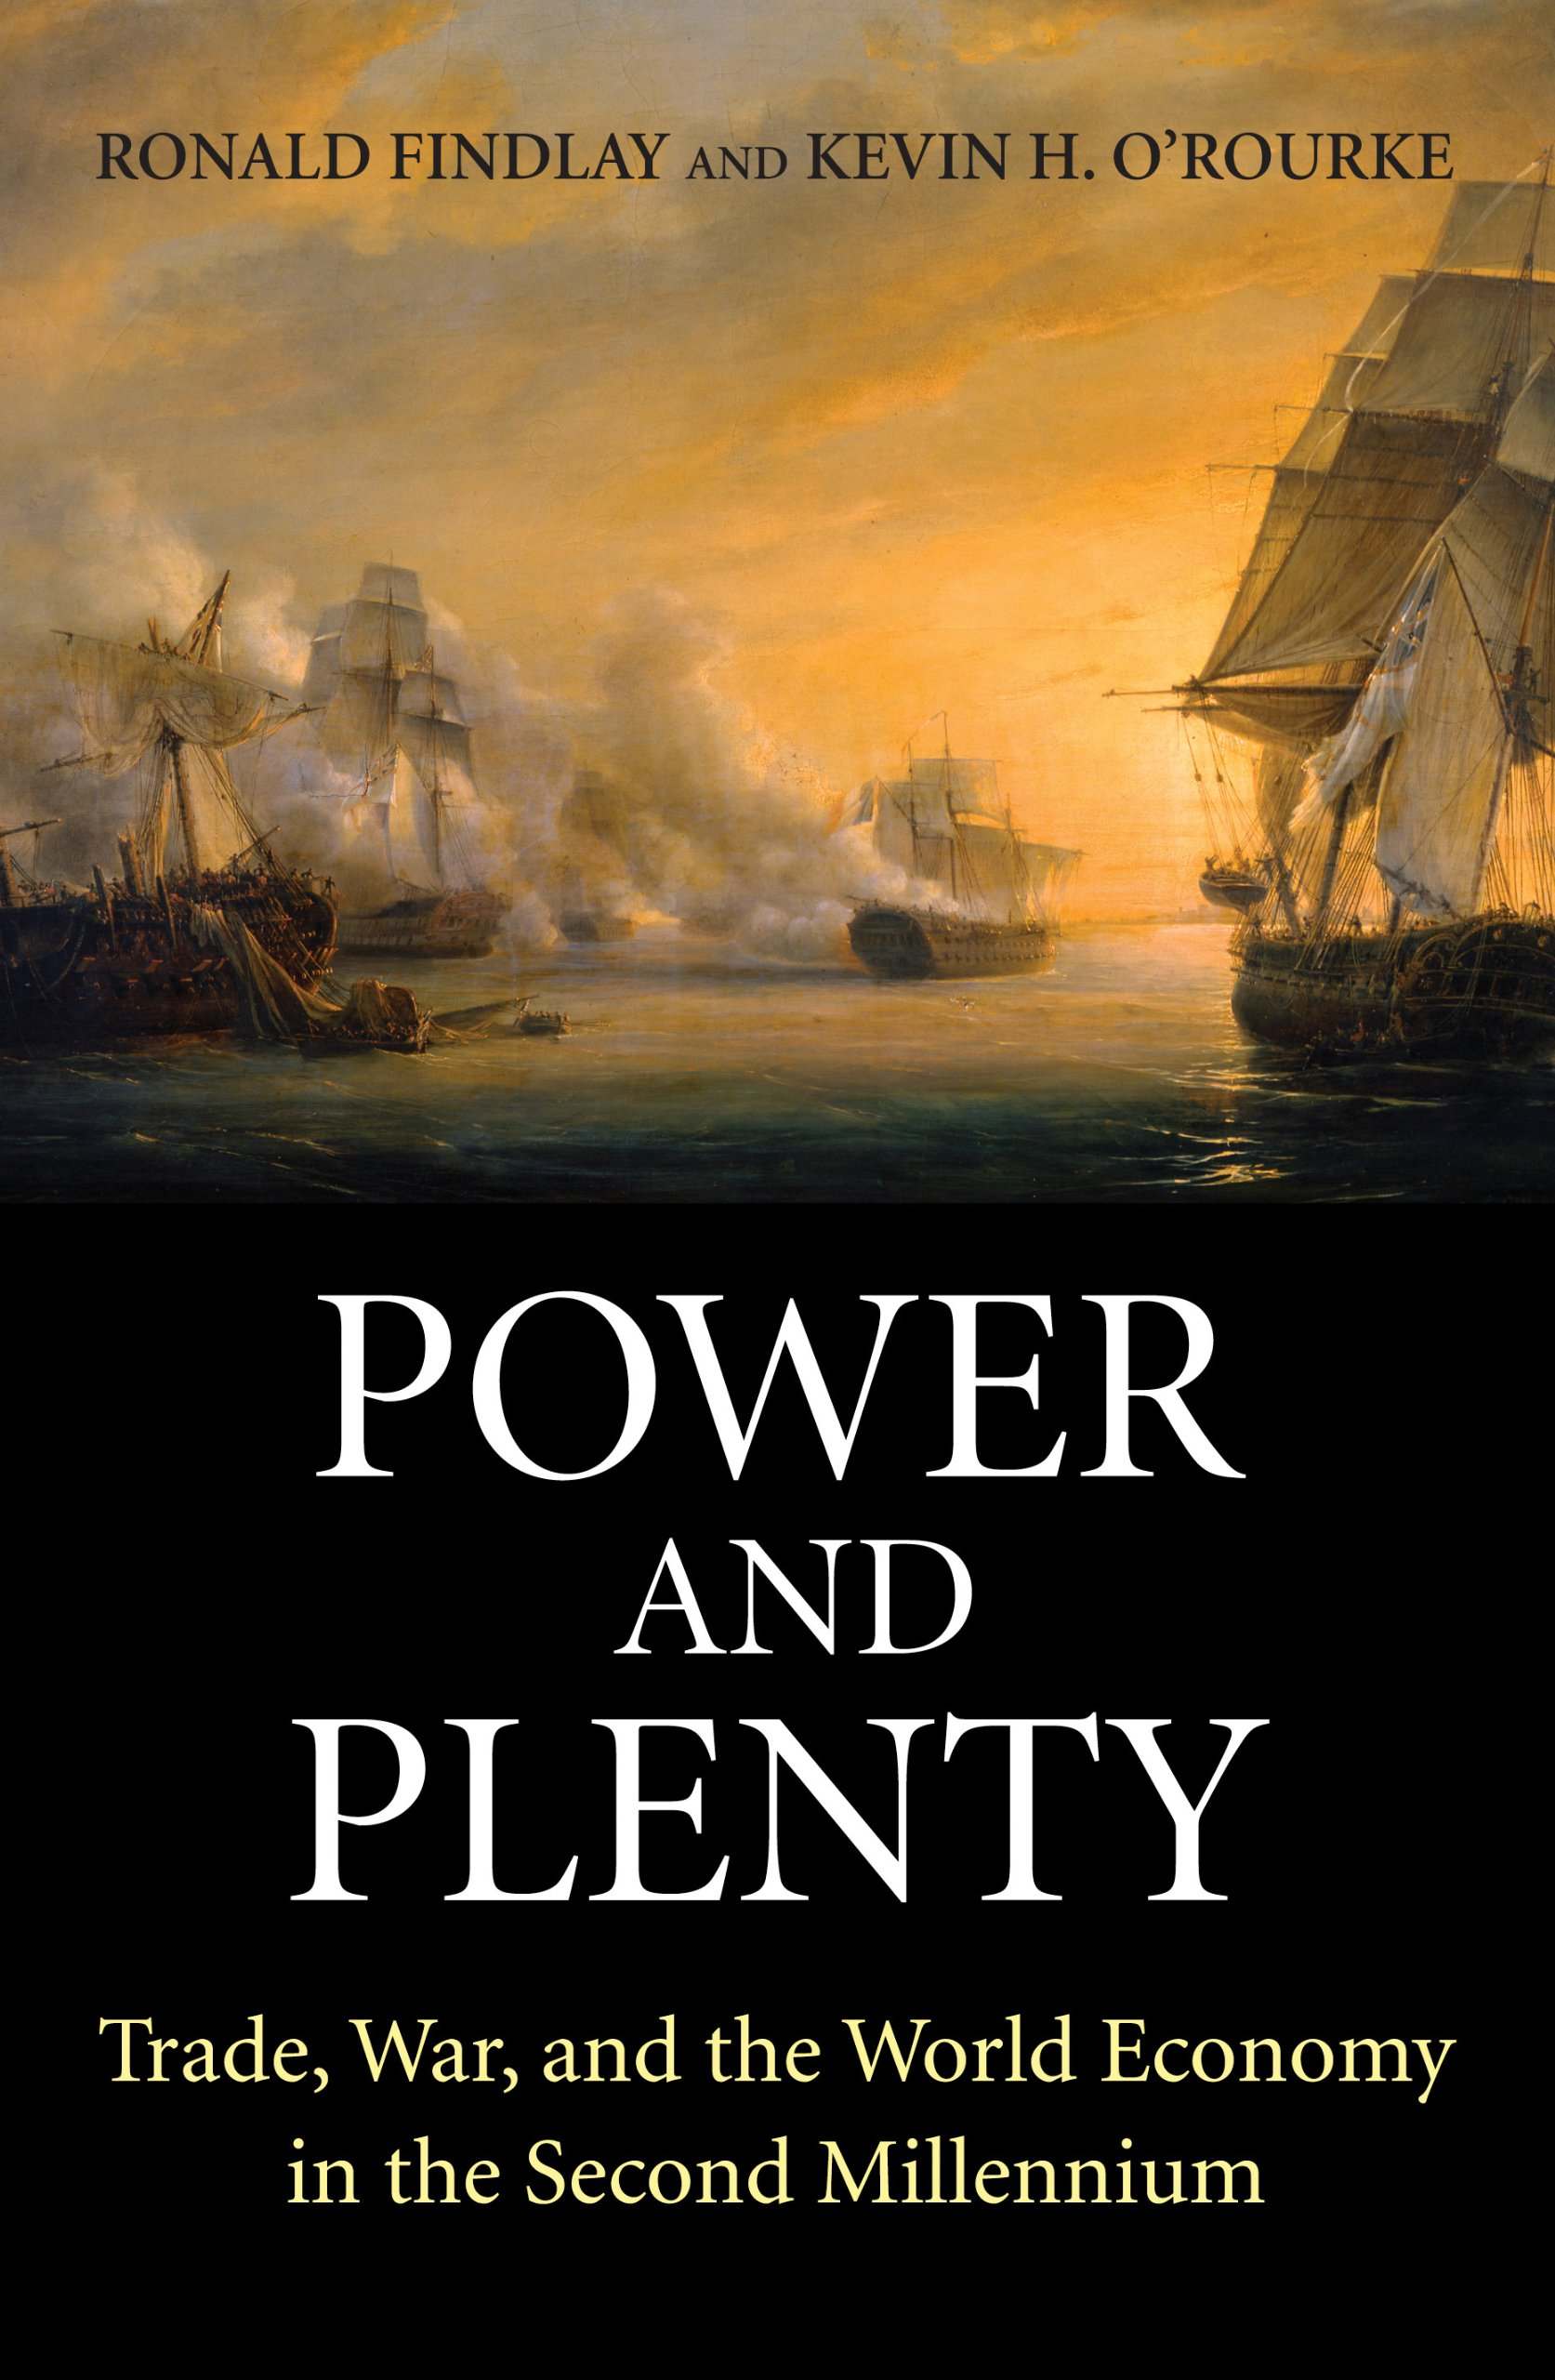 Power and Plenty: Trade, War, and the World Economy in the Second Millennium (The Princeton Economic History of the Western World Book 30)